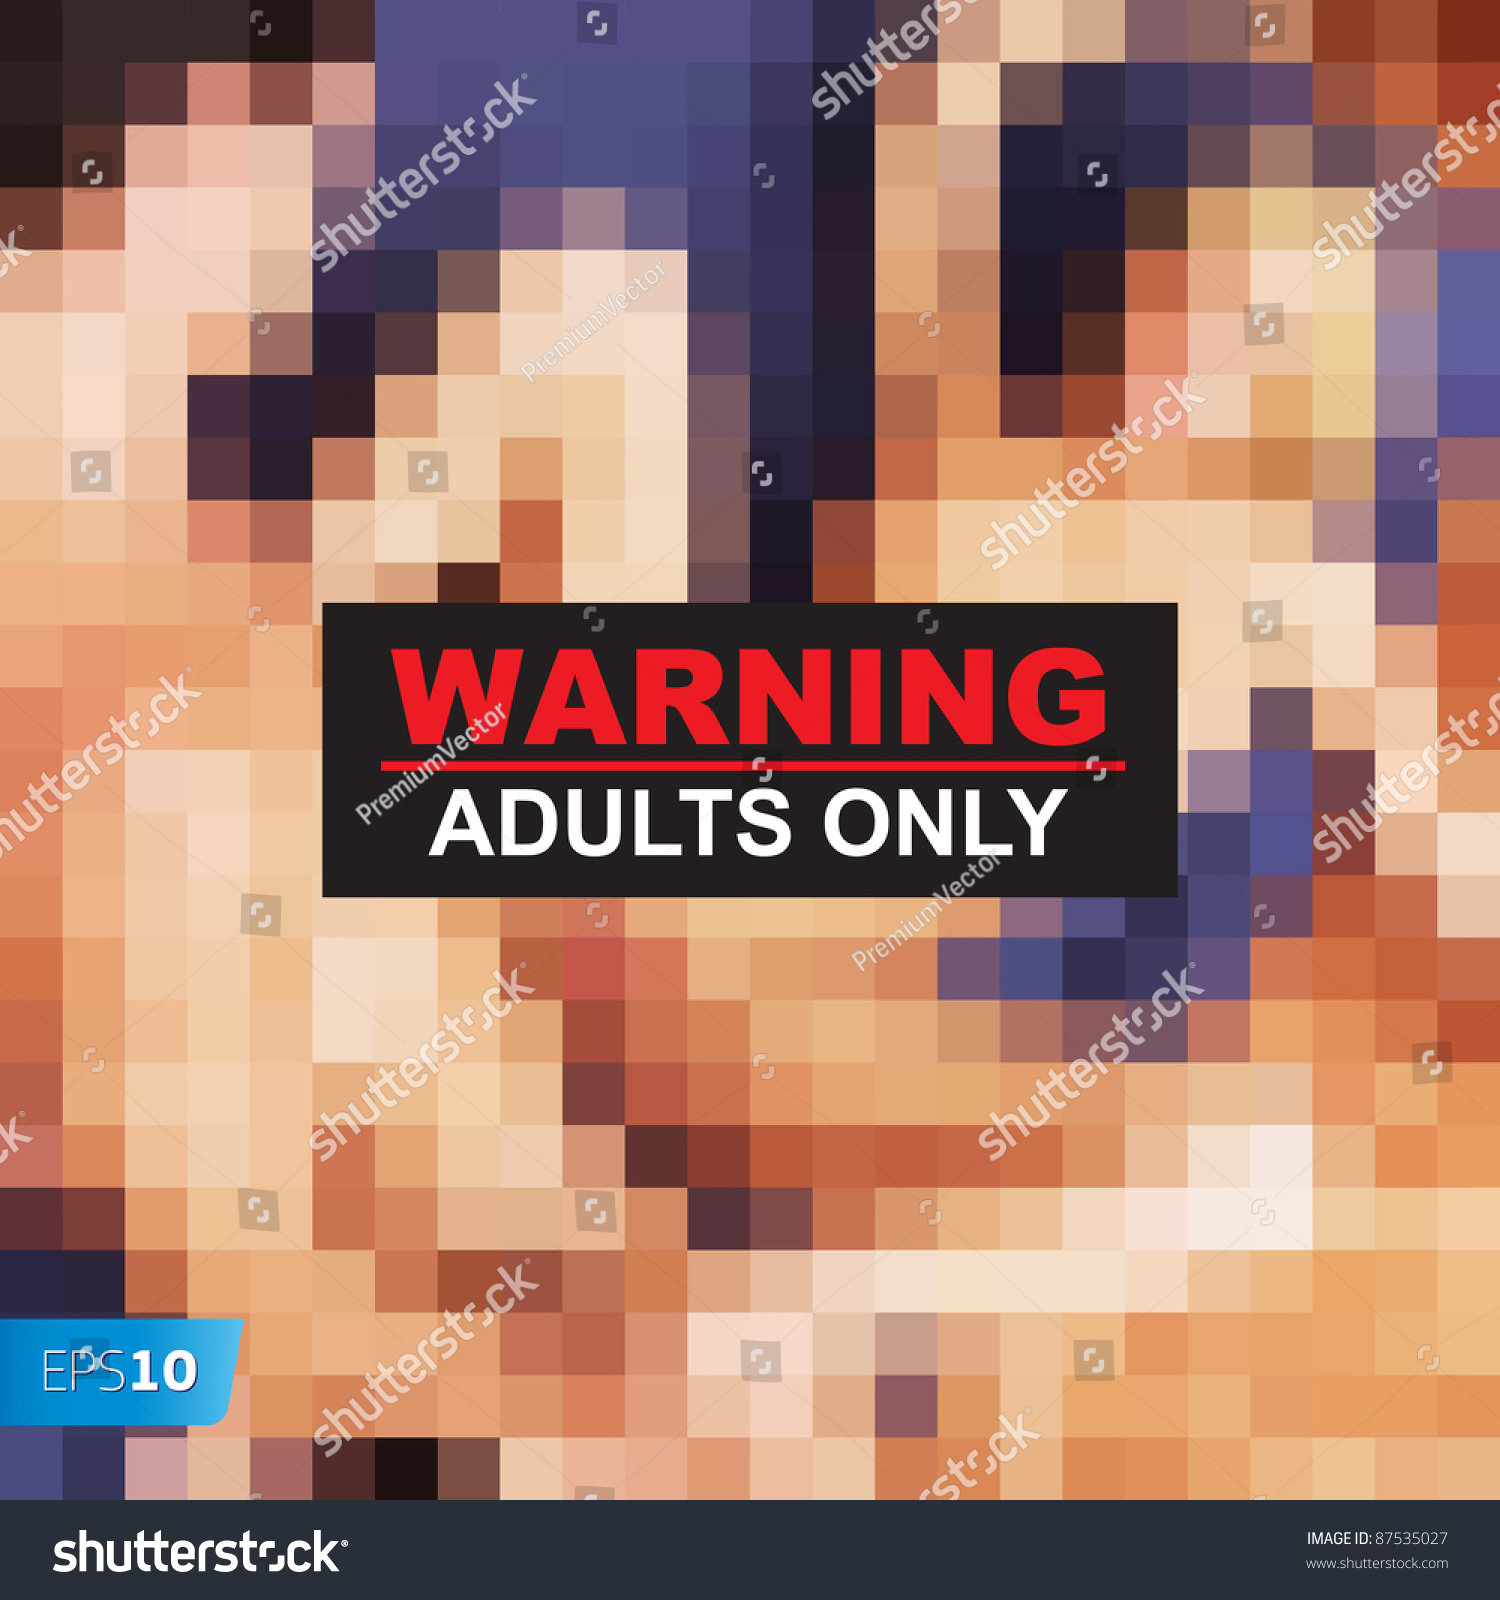 Discussion Free online adult only games